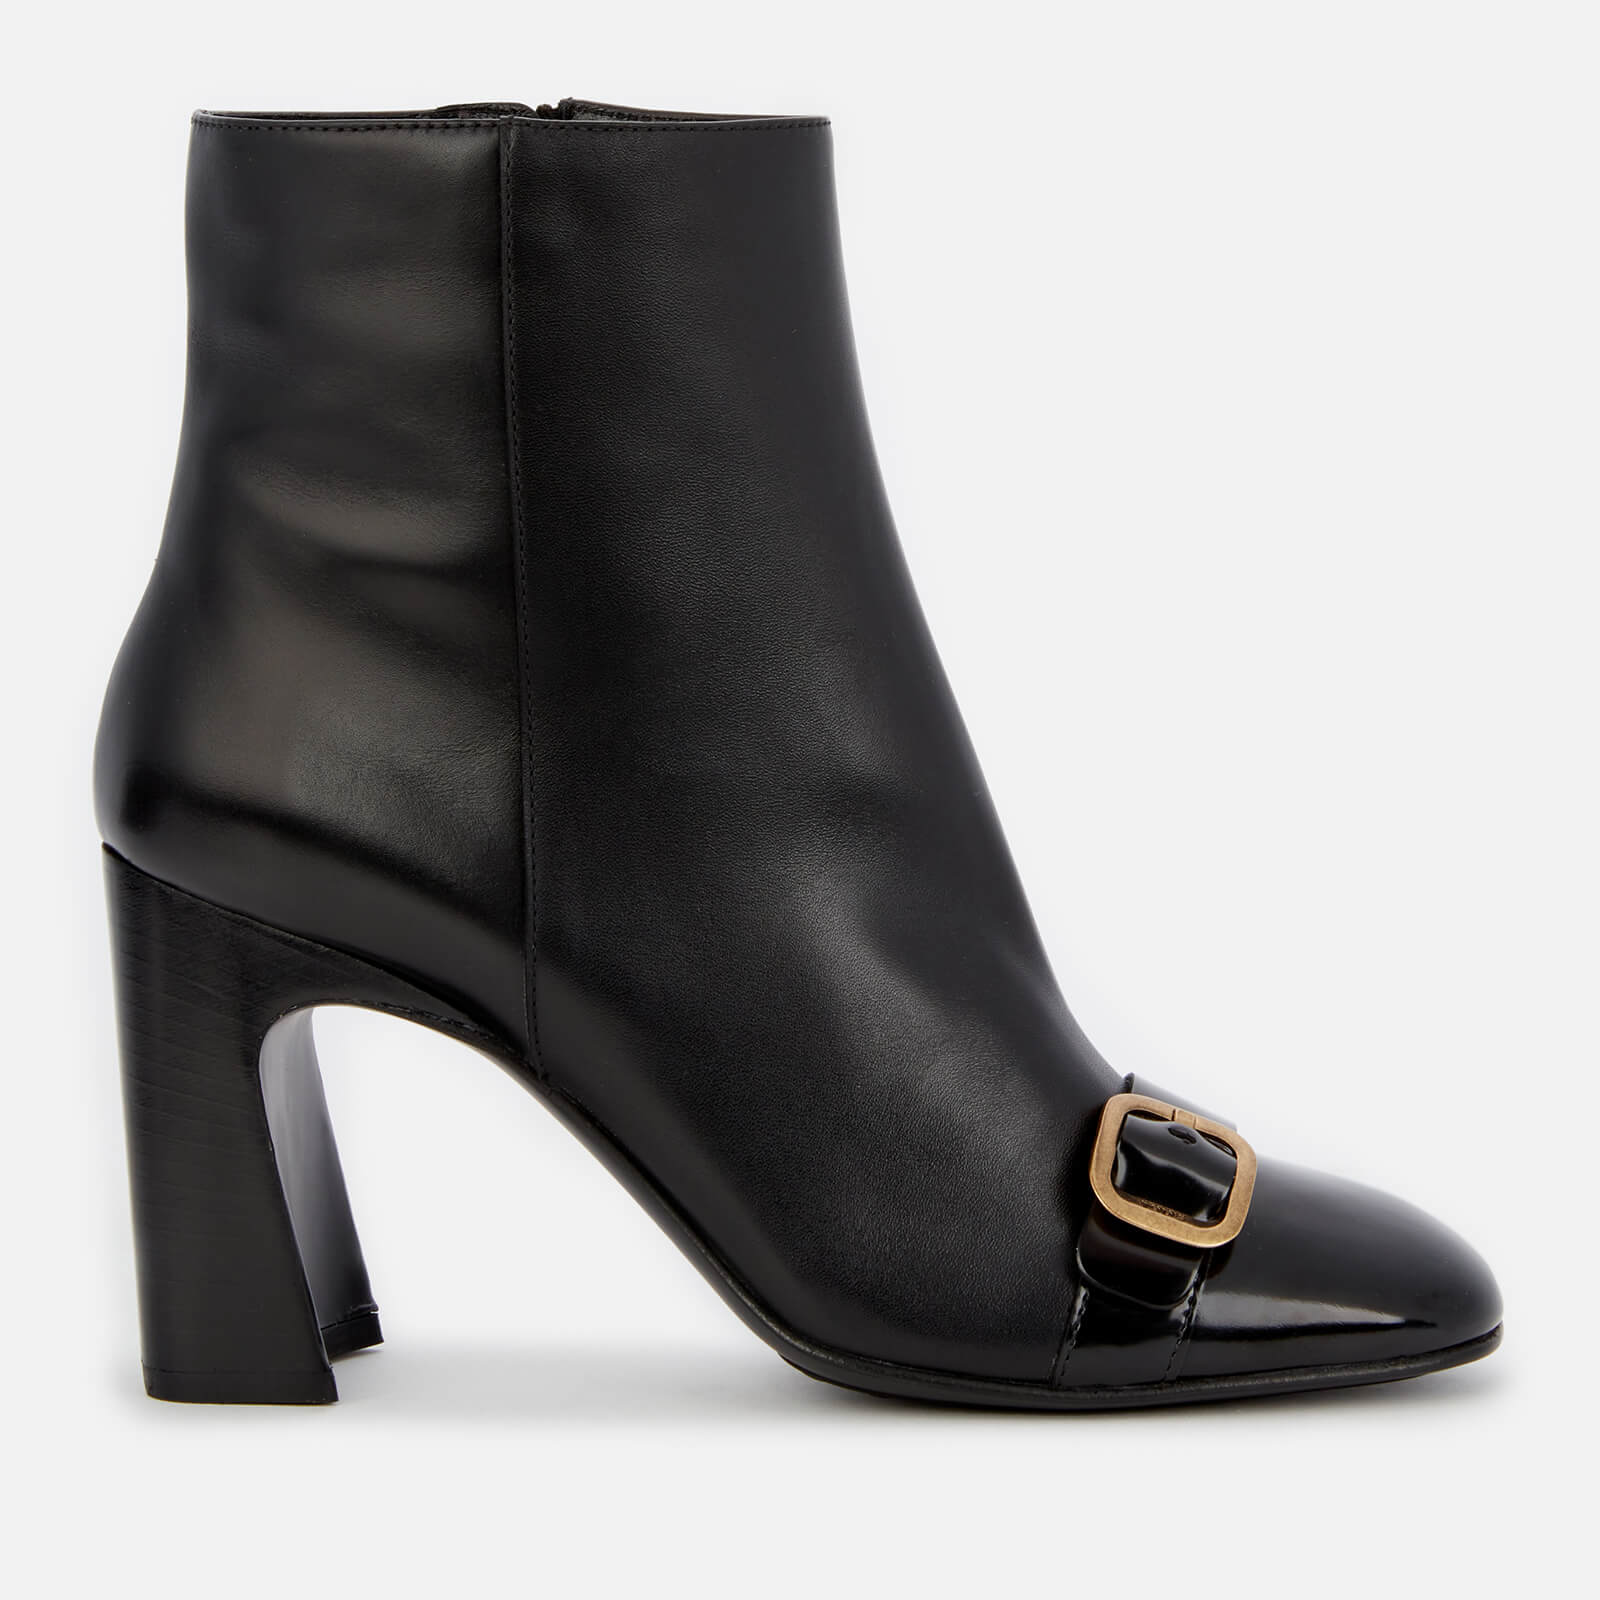 Tod's Women's Leather Heeled Ankle Boots - Black - Uk 4